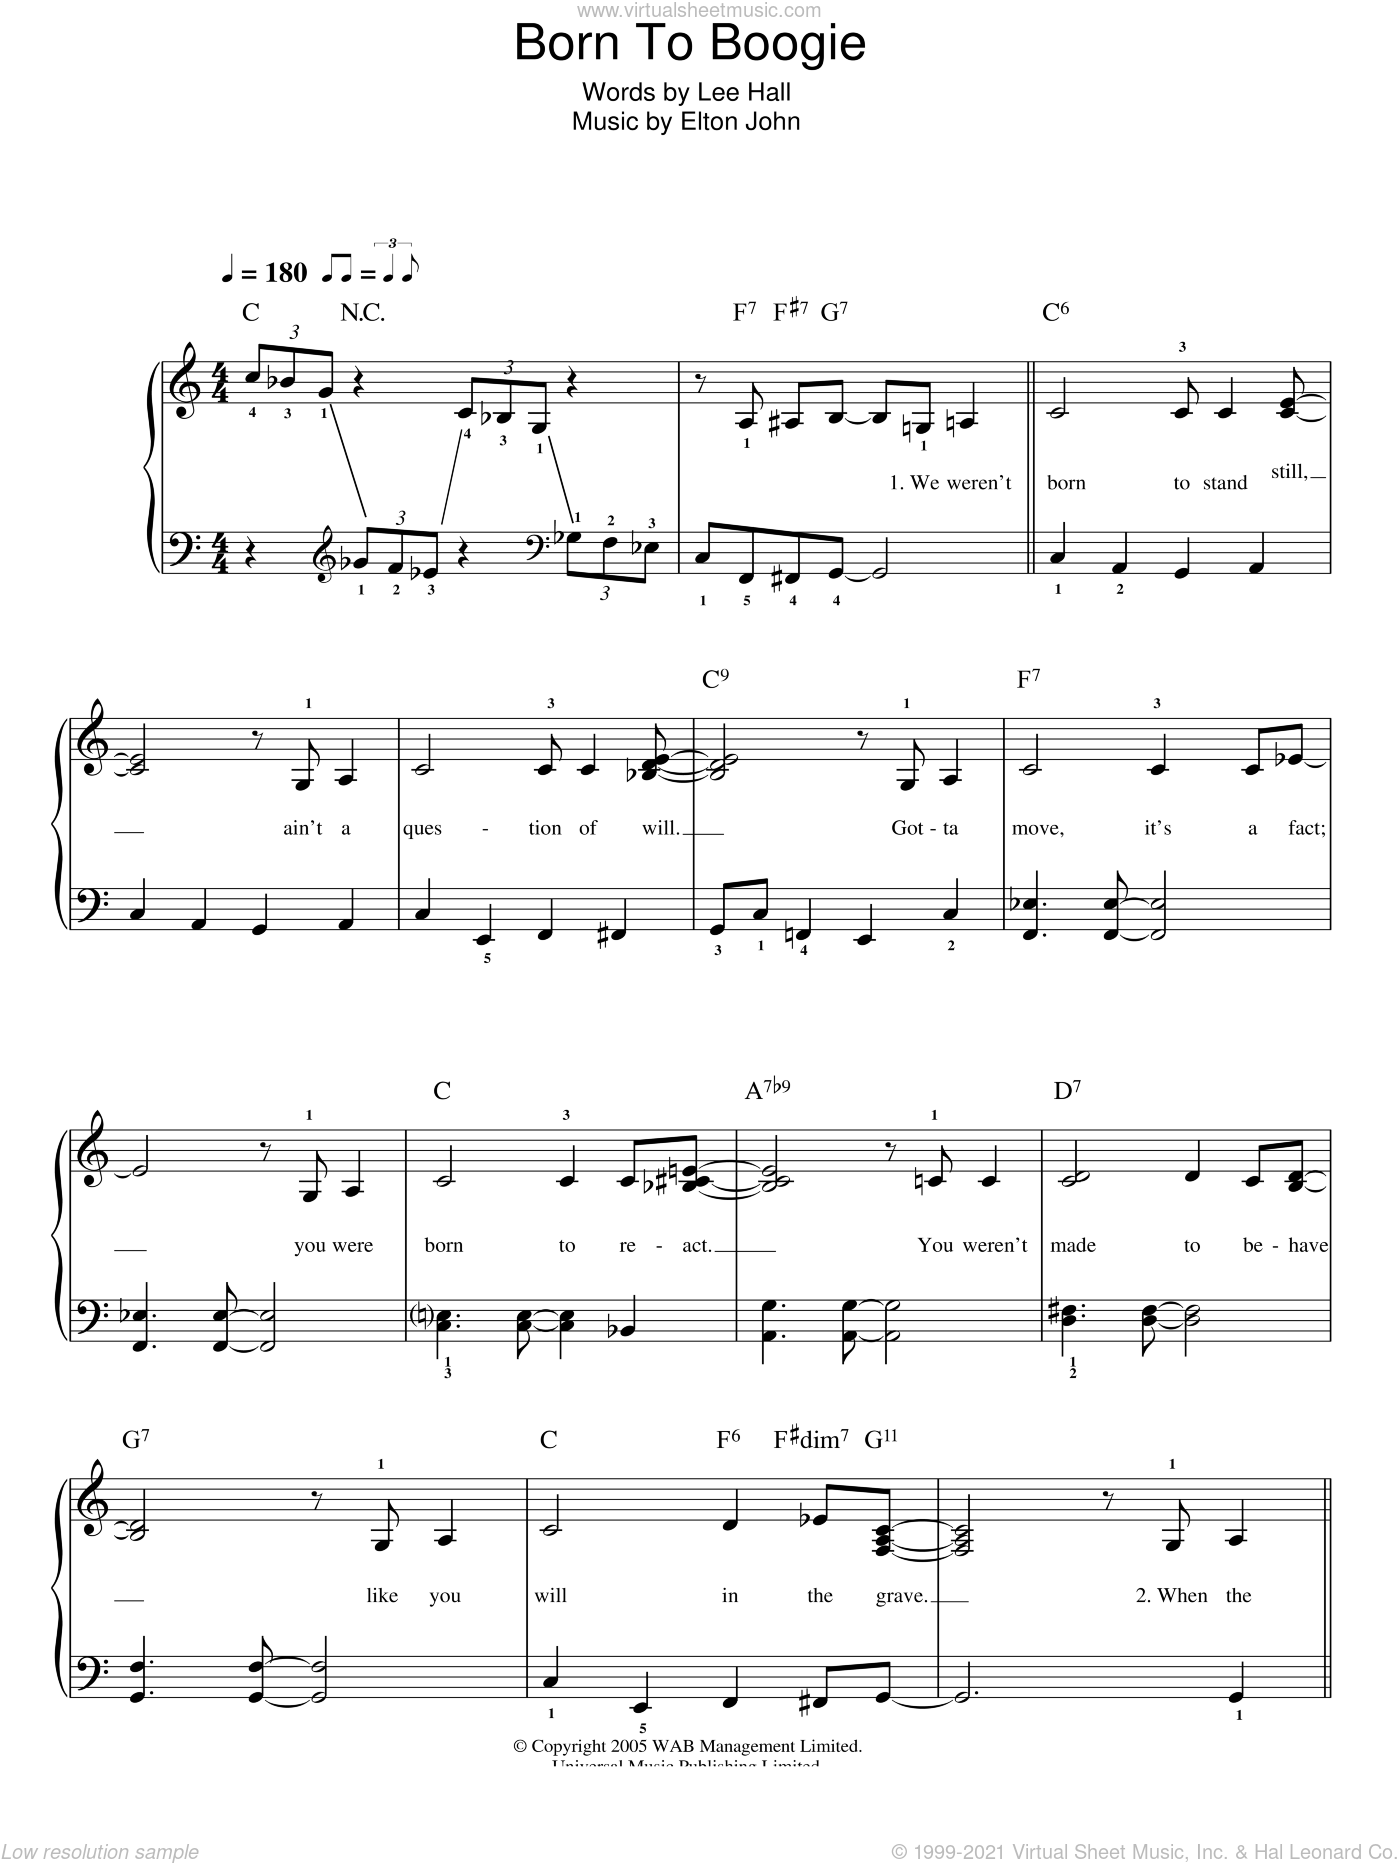 Born To Boogie sheet music for piano solo (chords) by Lee Hall